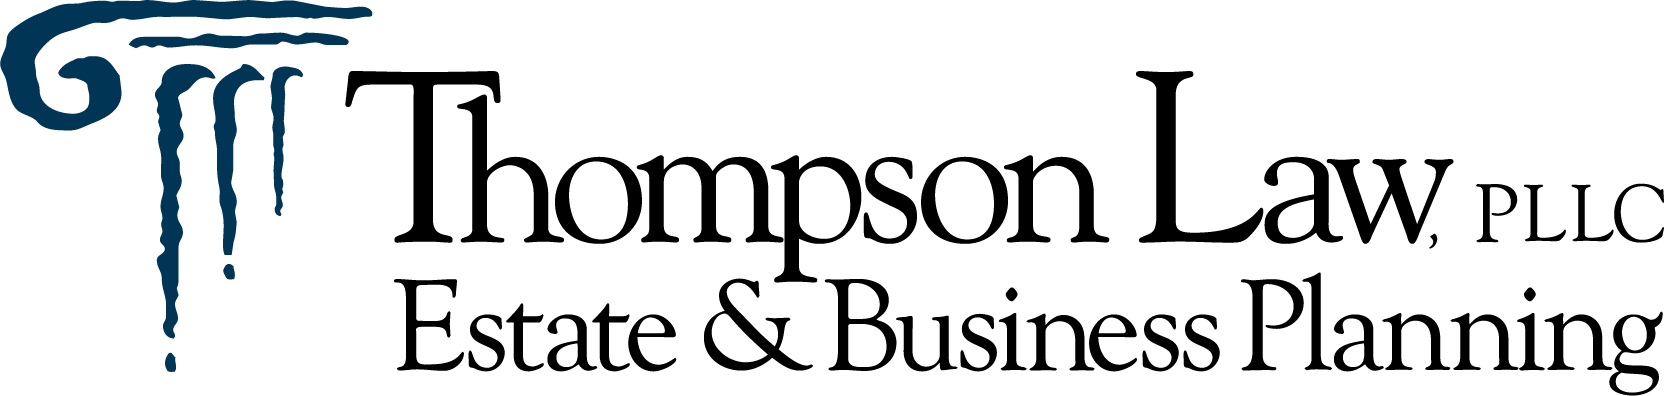 Thompson Law PLLC logo